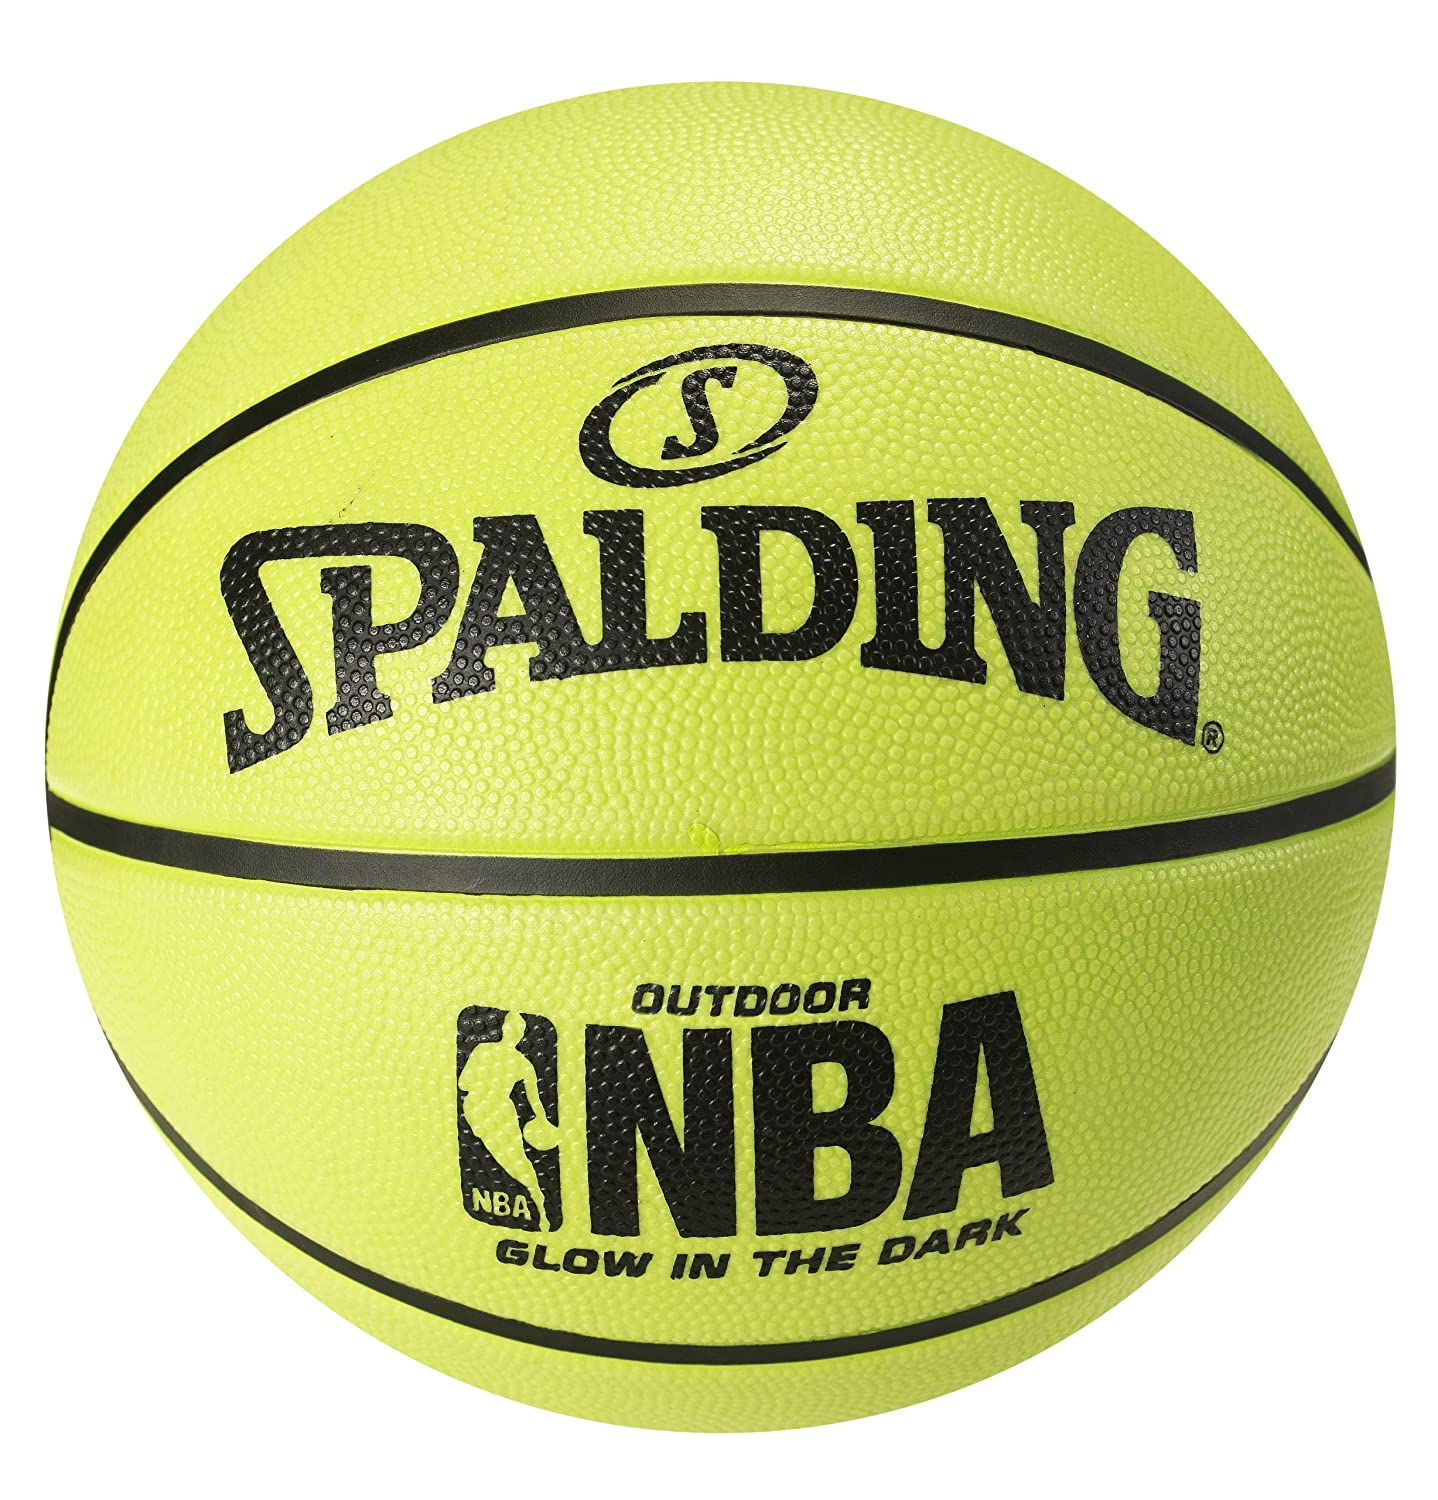 Spalding Basketball NBA Glow in The Dark 73737-parent